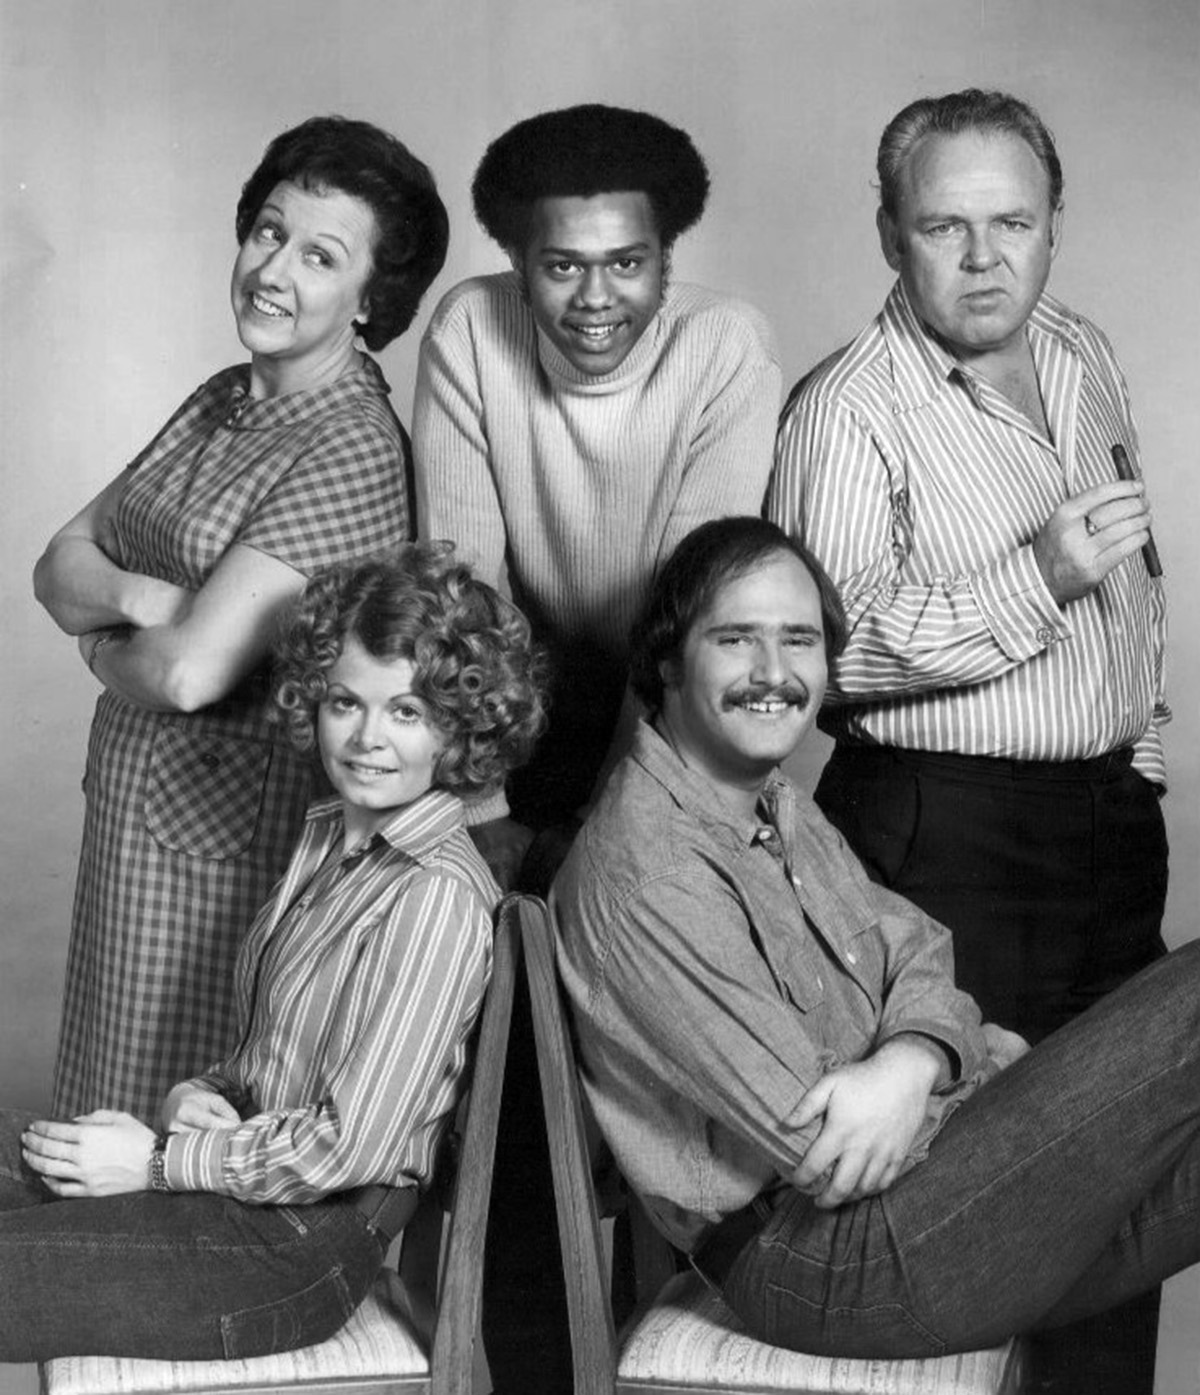 Photograph of the interracial cast of the CBS television show All in the Family.